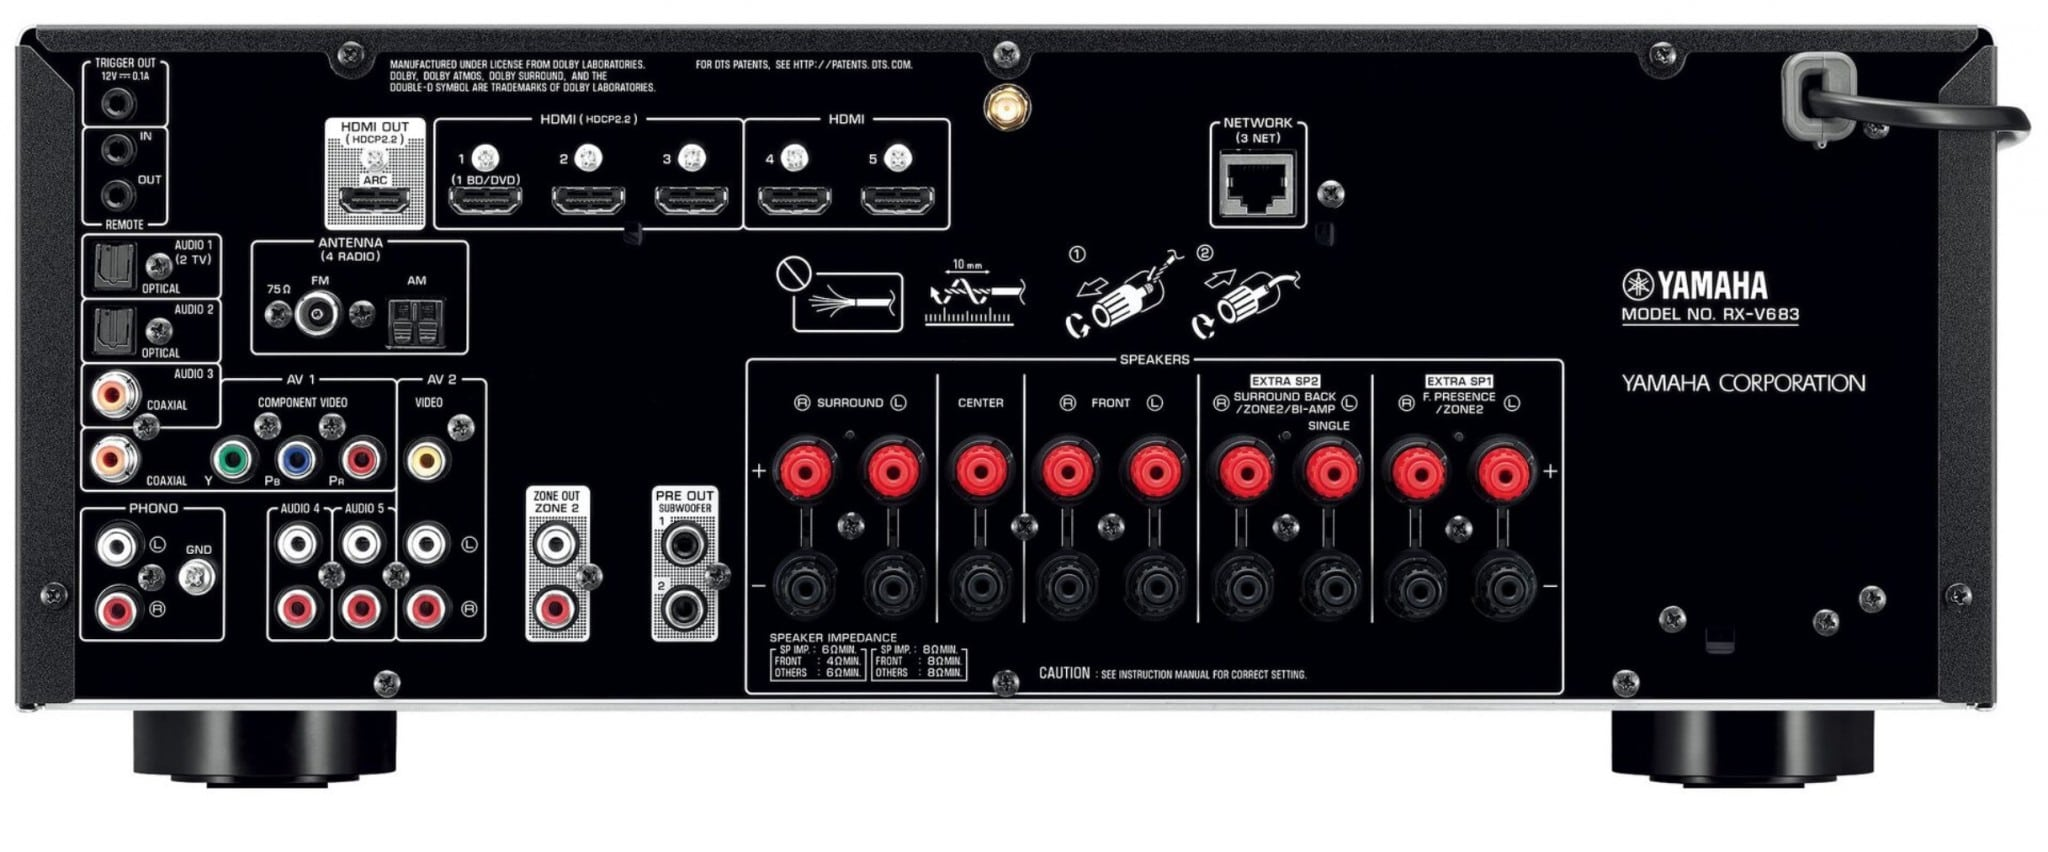 yamaha musiccast multi channel receivers rx v583 and rx. Black Bedroom Furniture Sets. Home Design Ideas